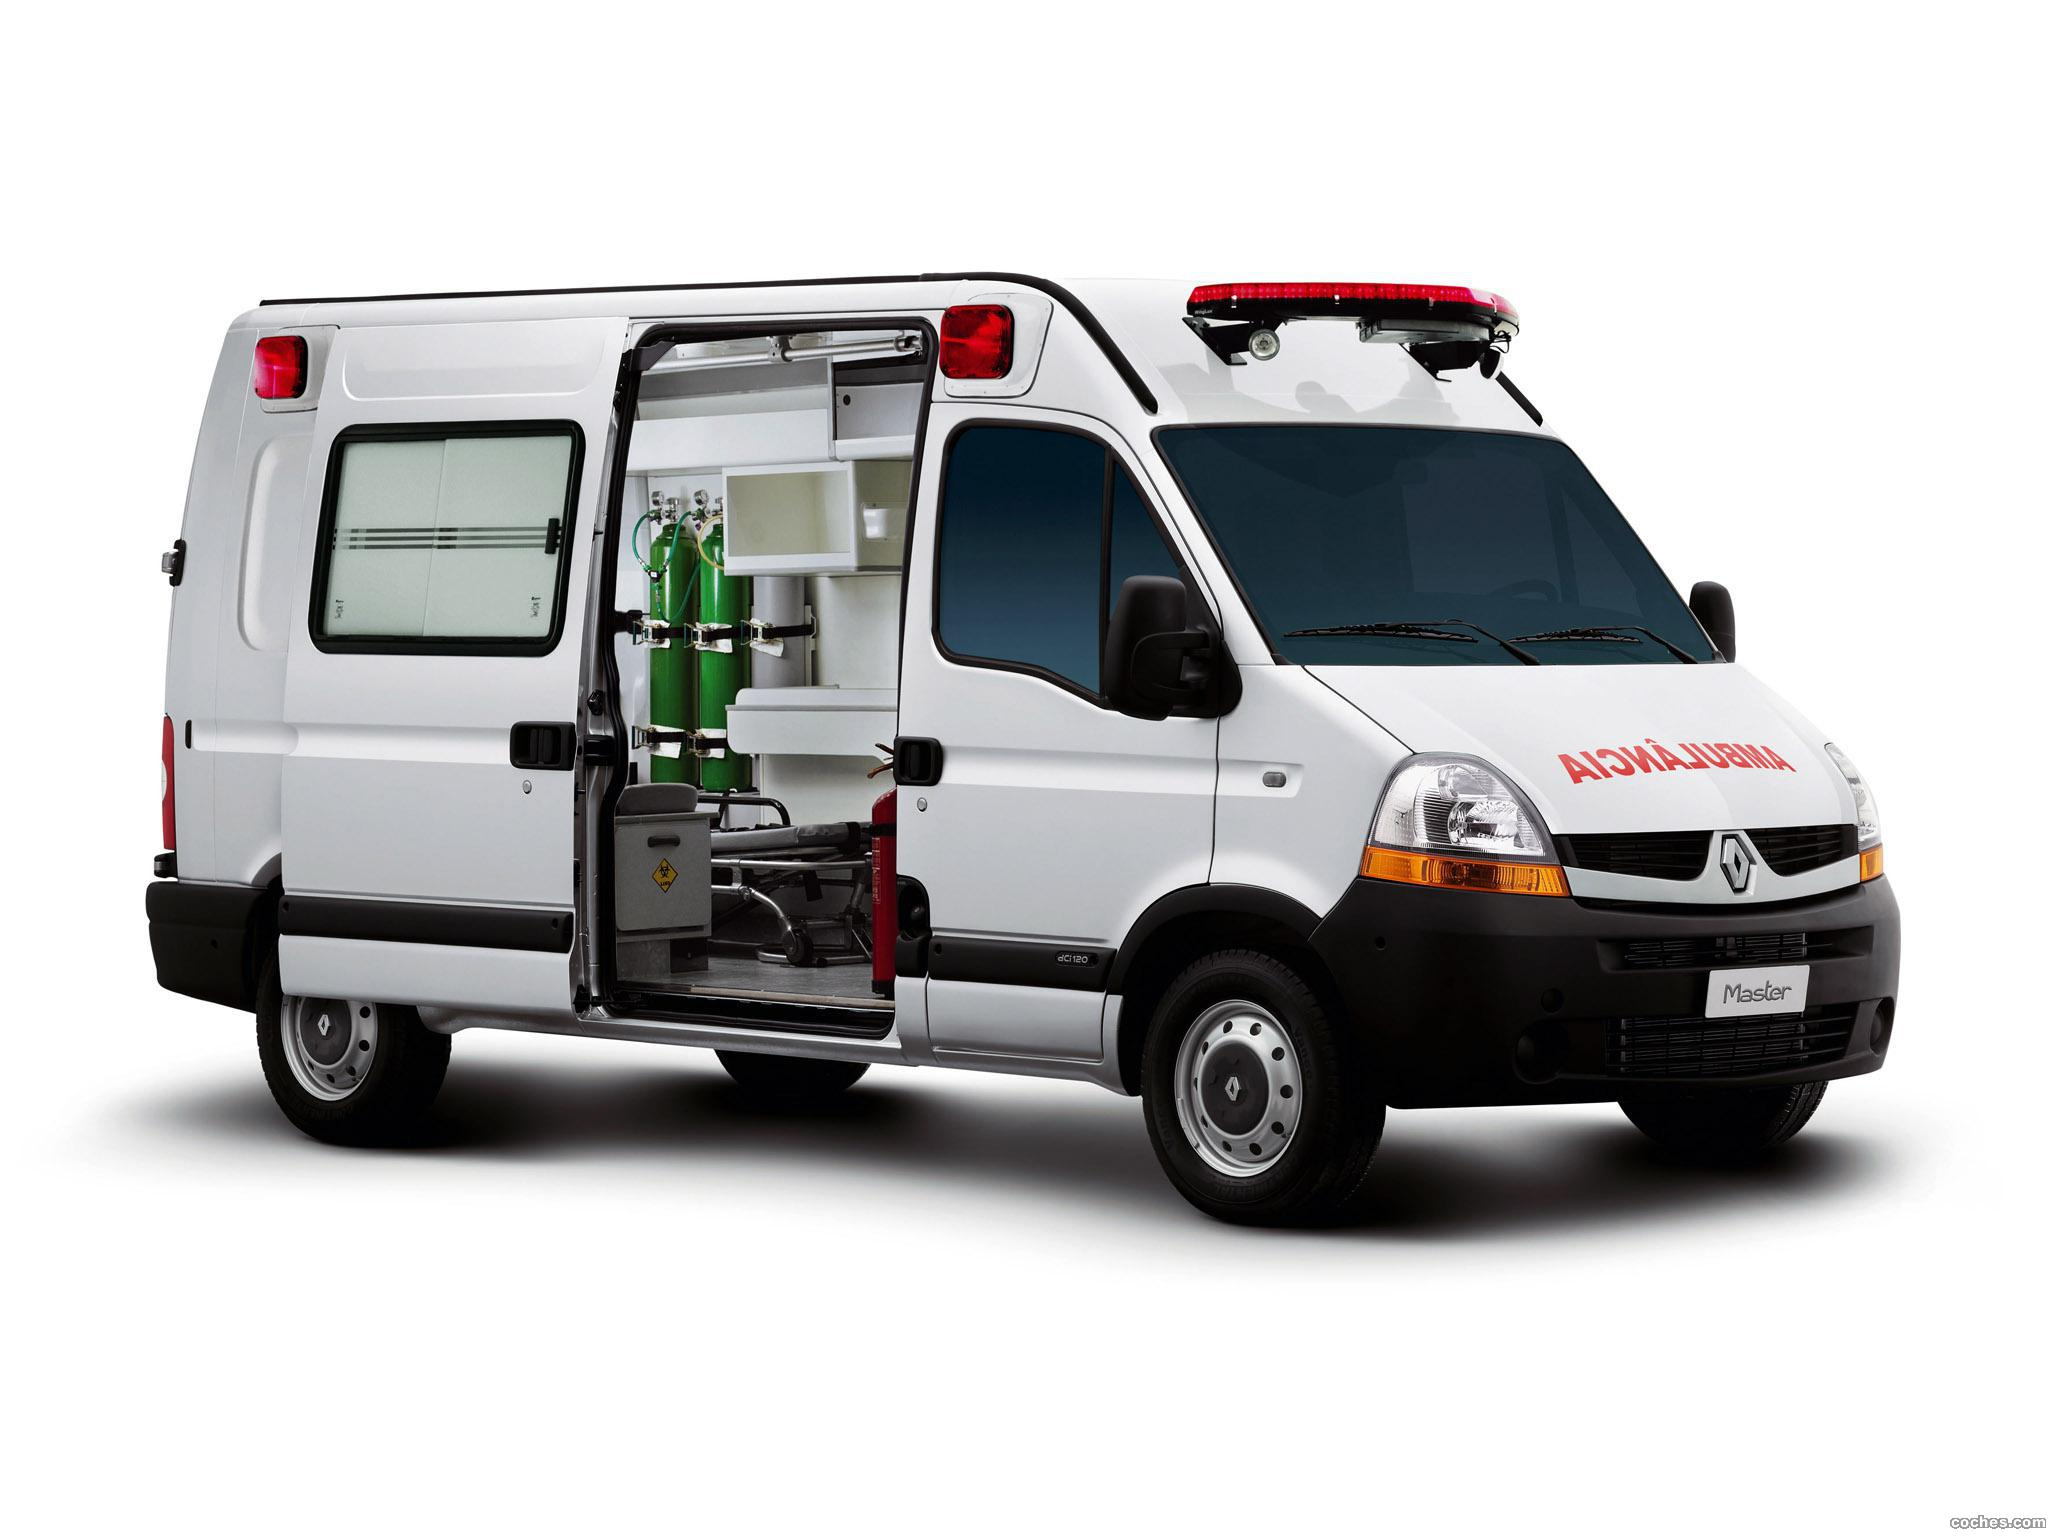 Foto 0 de Renault Master High Roof Ambulance Brasil 2009